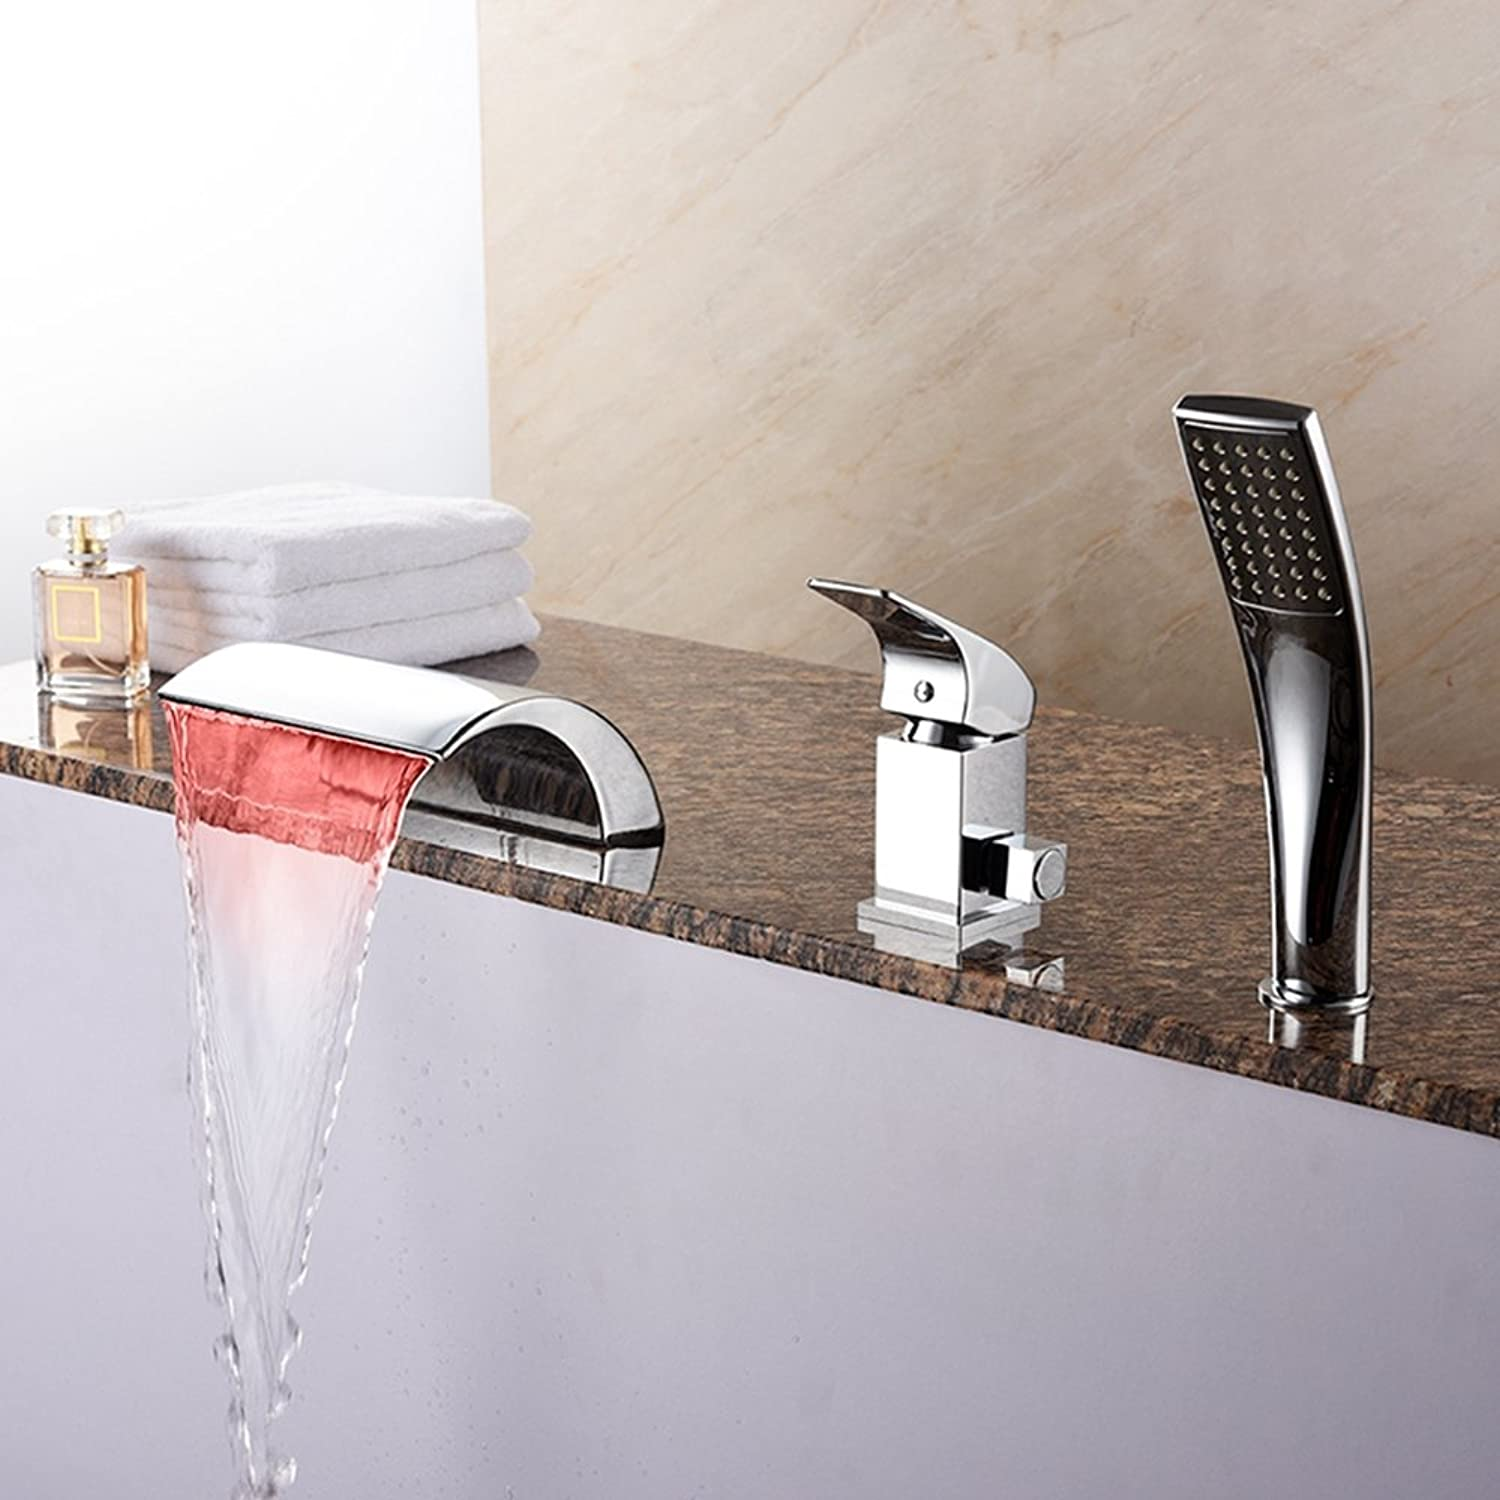 BFTAPS LED Light Waterfall Bathtub Faucet Three-piece With Hand Shower Bathroom Three-hole Basin Side Hot And Cold Water Sitting Mixing Valve Taps,ChromeFaucet